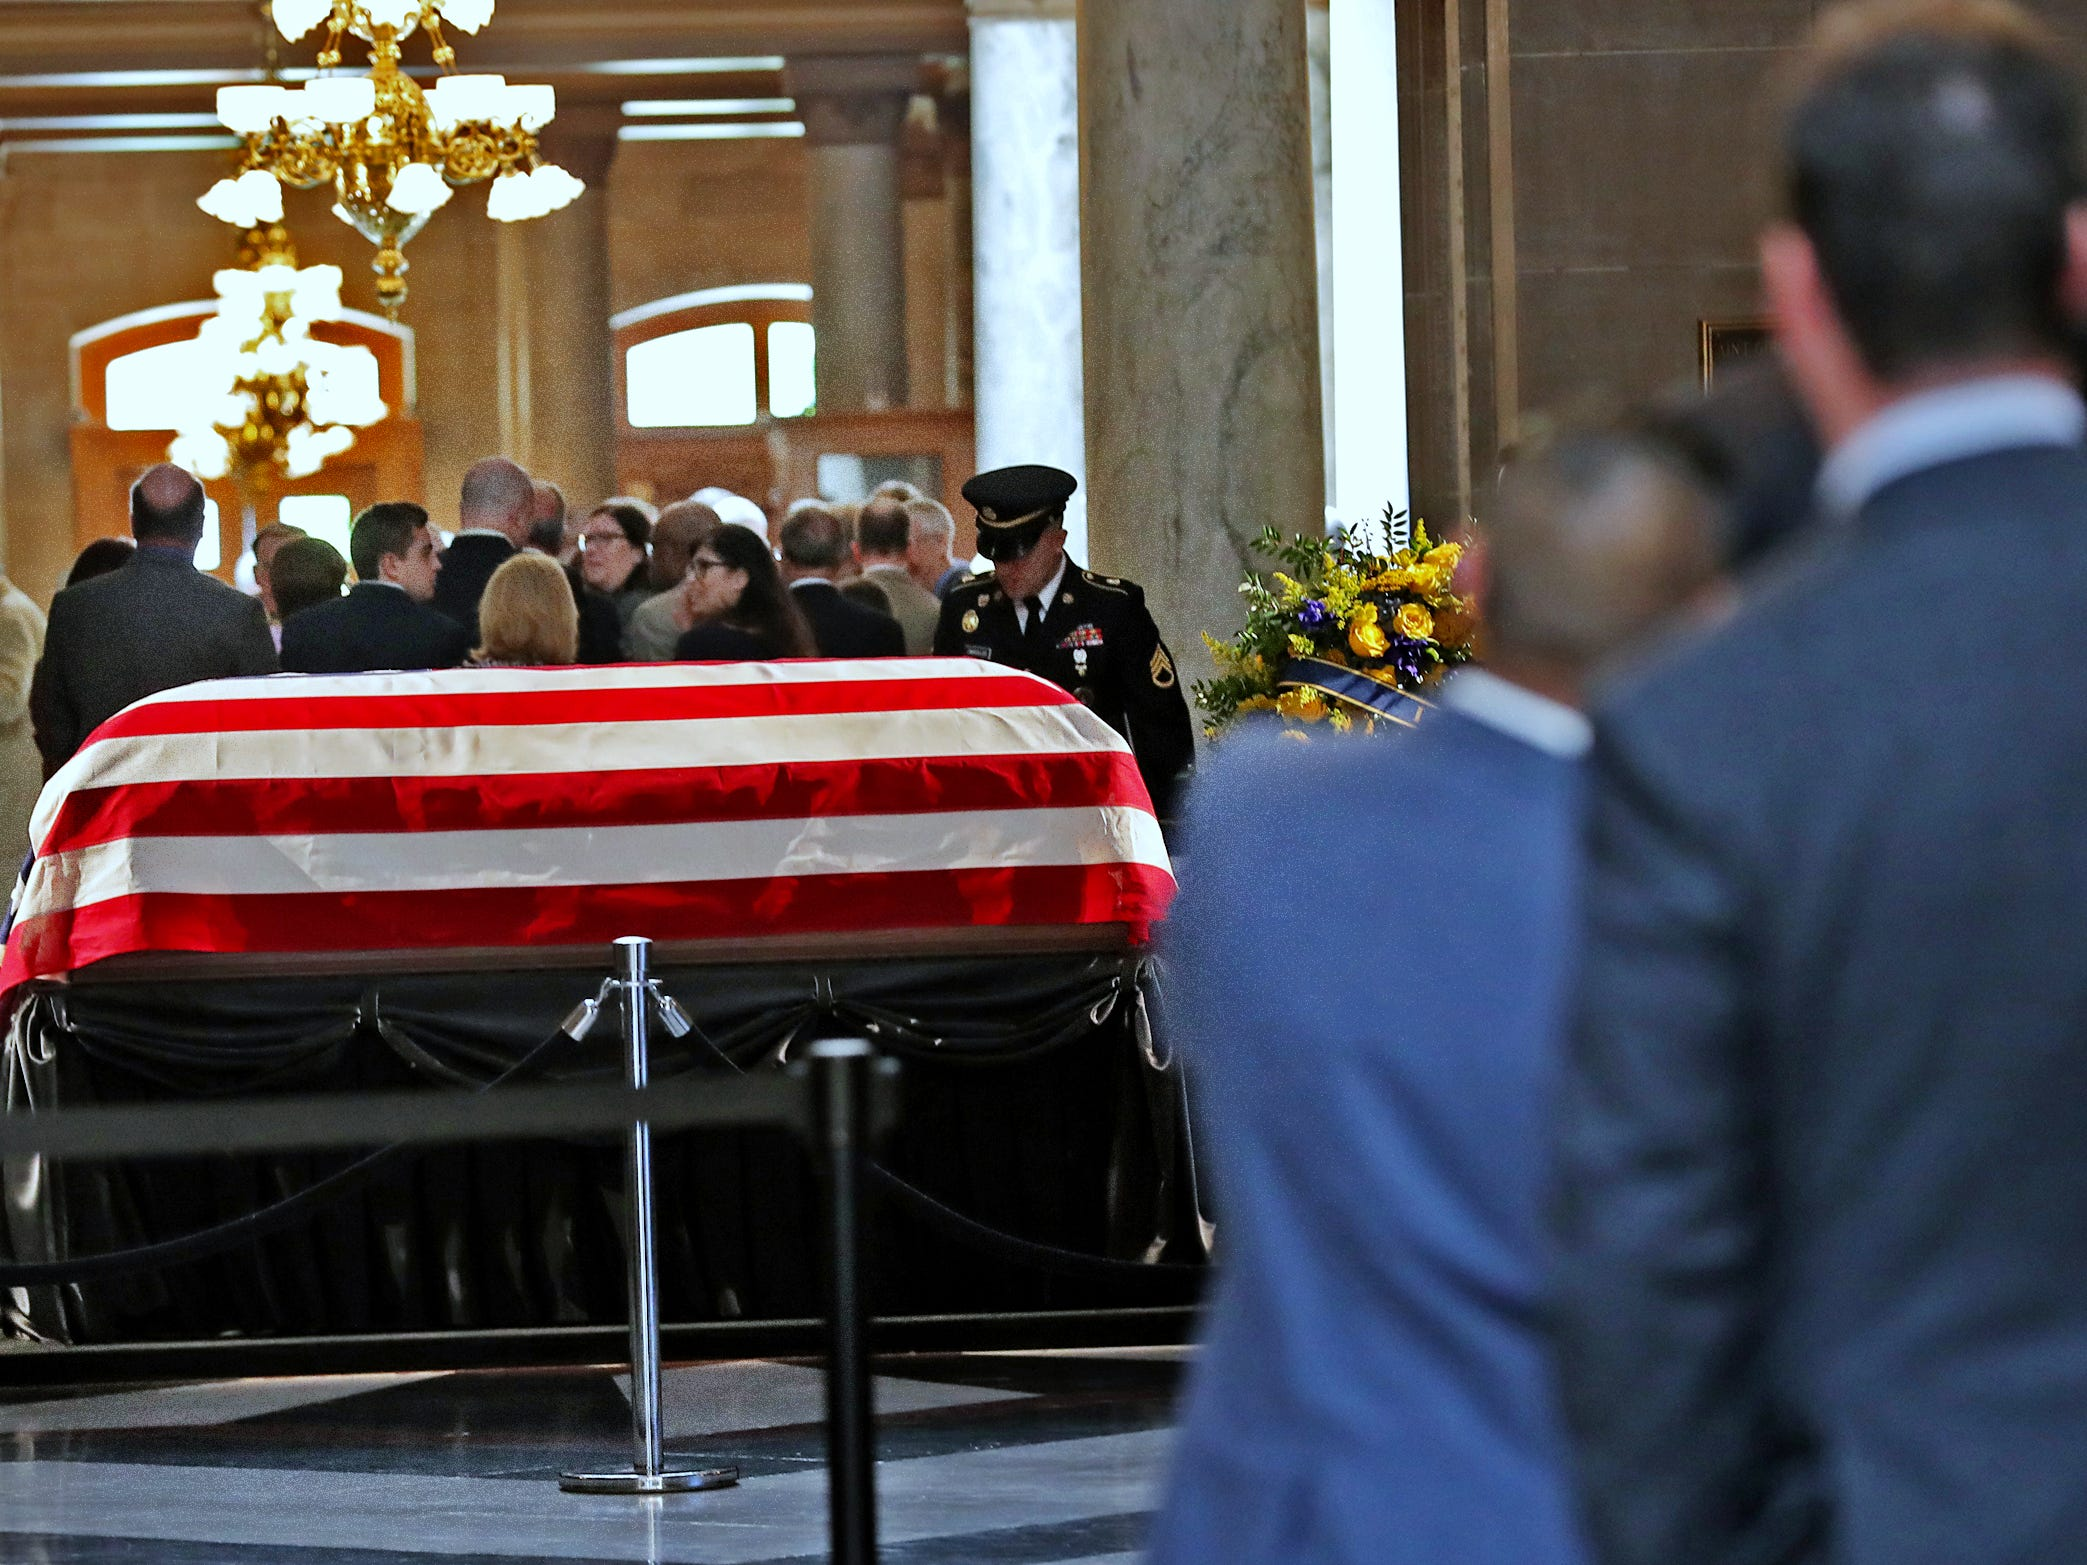 People wait to pay their respects as former Senator and Mayor Richard Lugar lies in state under the Statehouse rotunda, Tuesday, May 14, 2019.